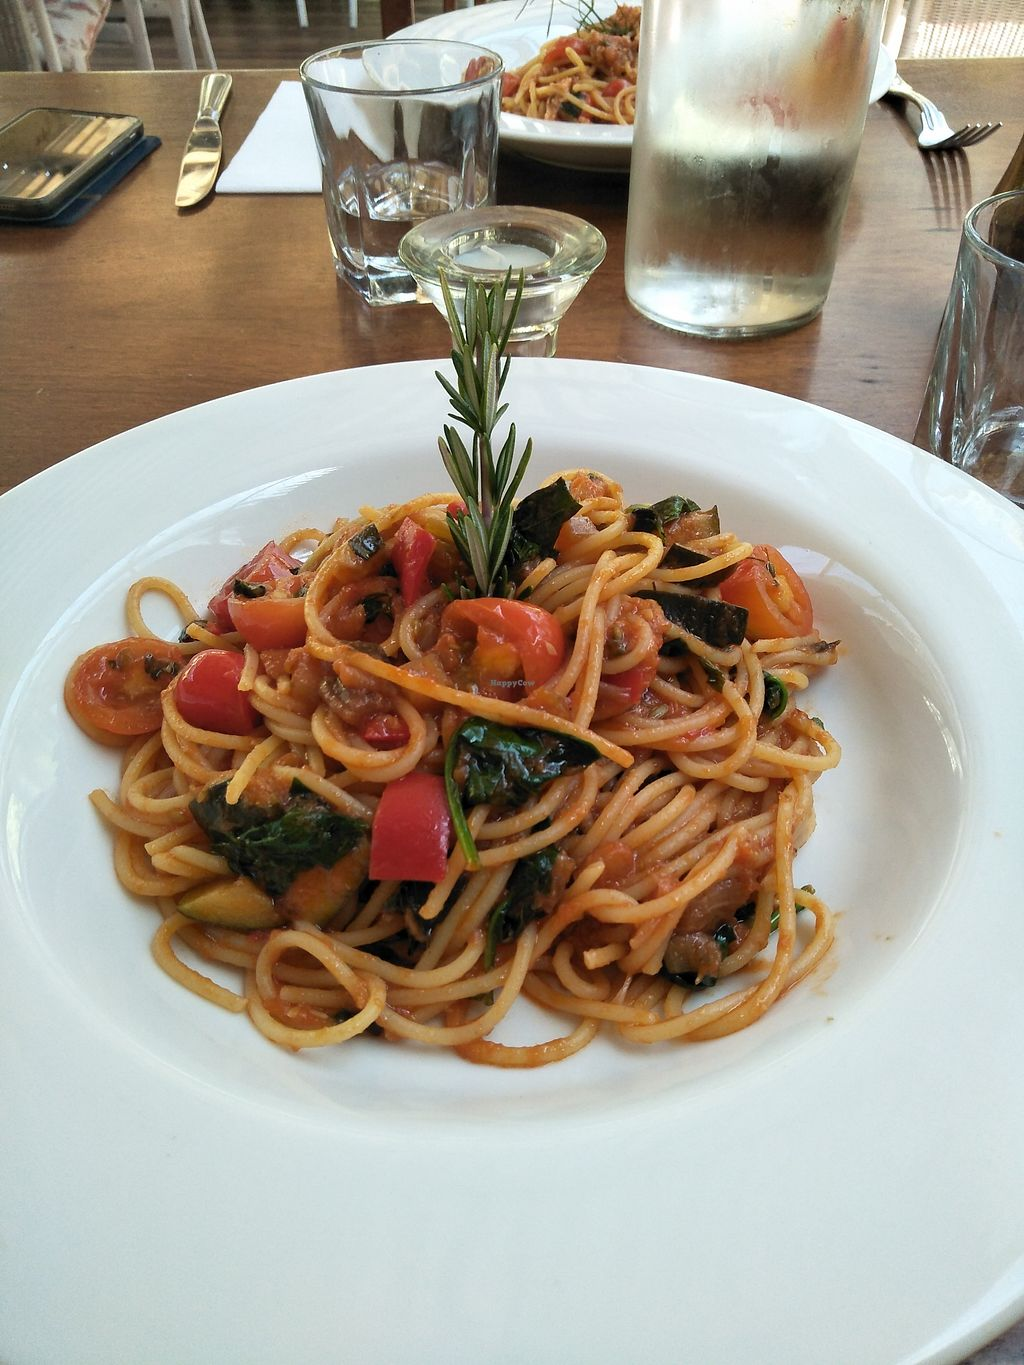 """Photo of La Casina   by <a href=""""/members/profile/Cynthia1998"""">Cynthia1998</a> <br/>Vegan freshly made spaghetti with tomato sauce and seasonal vegetables  <br/> December 29, 2017  - <a href='/contact/abuse/image/108157/340400'>Report</a>"""